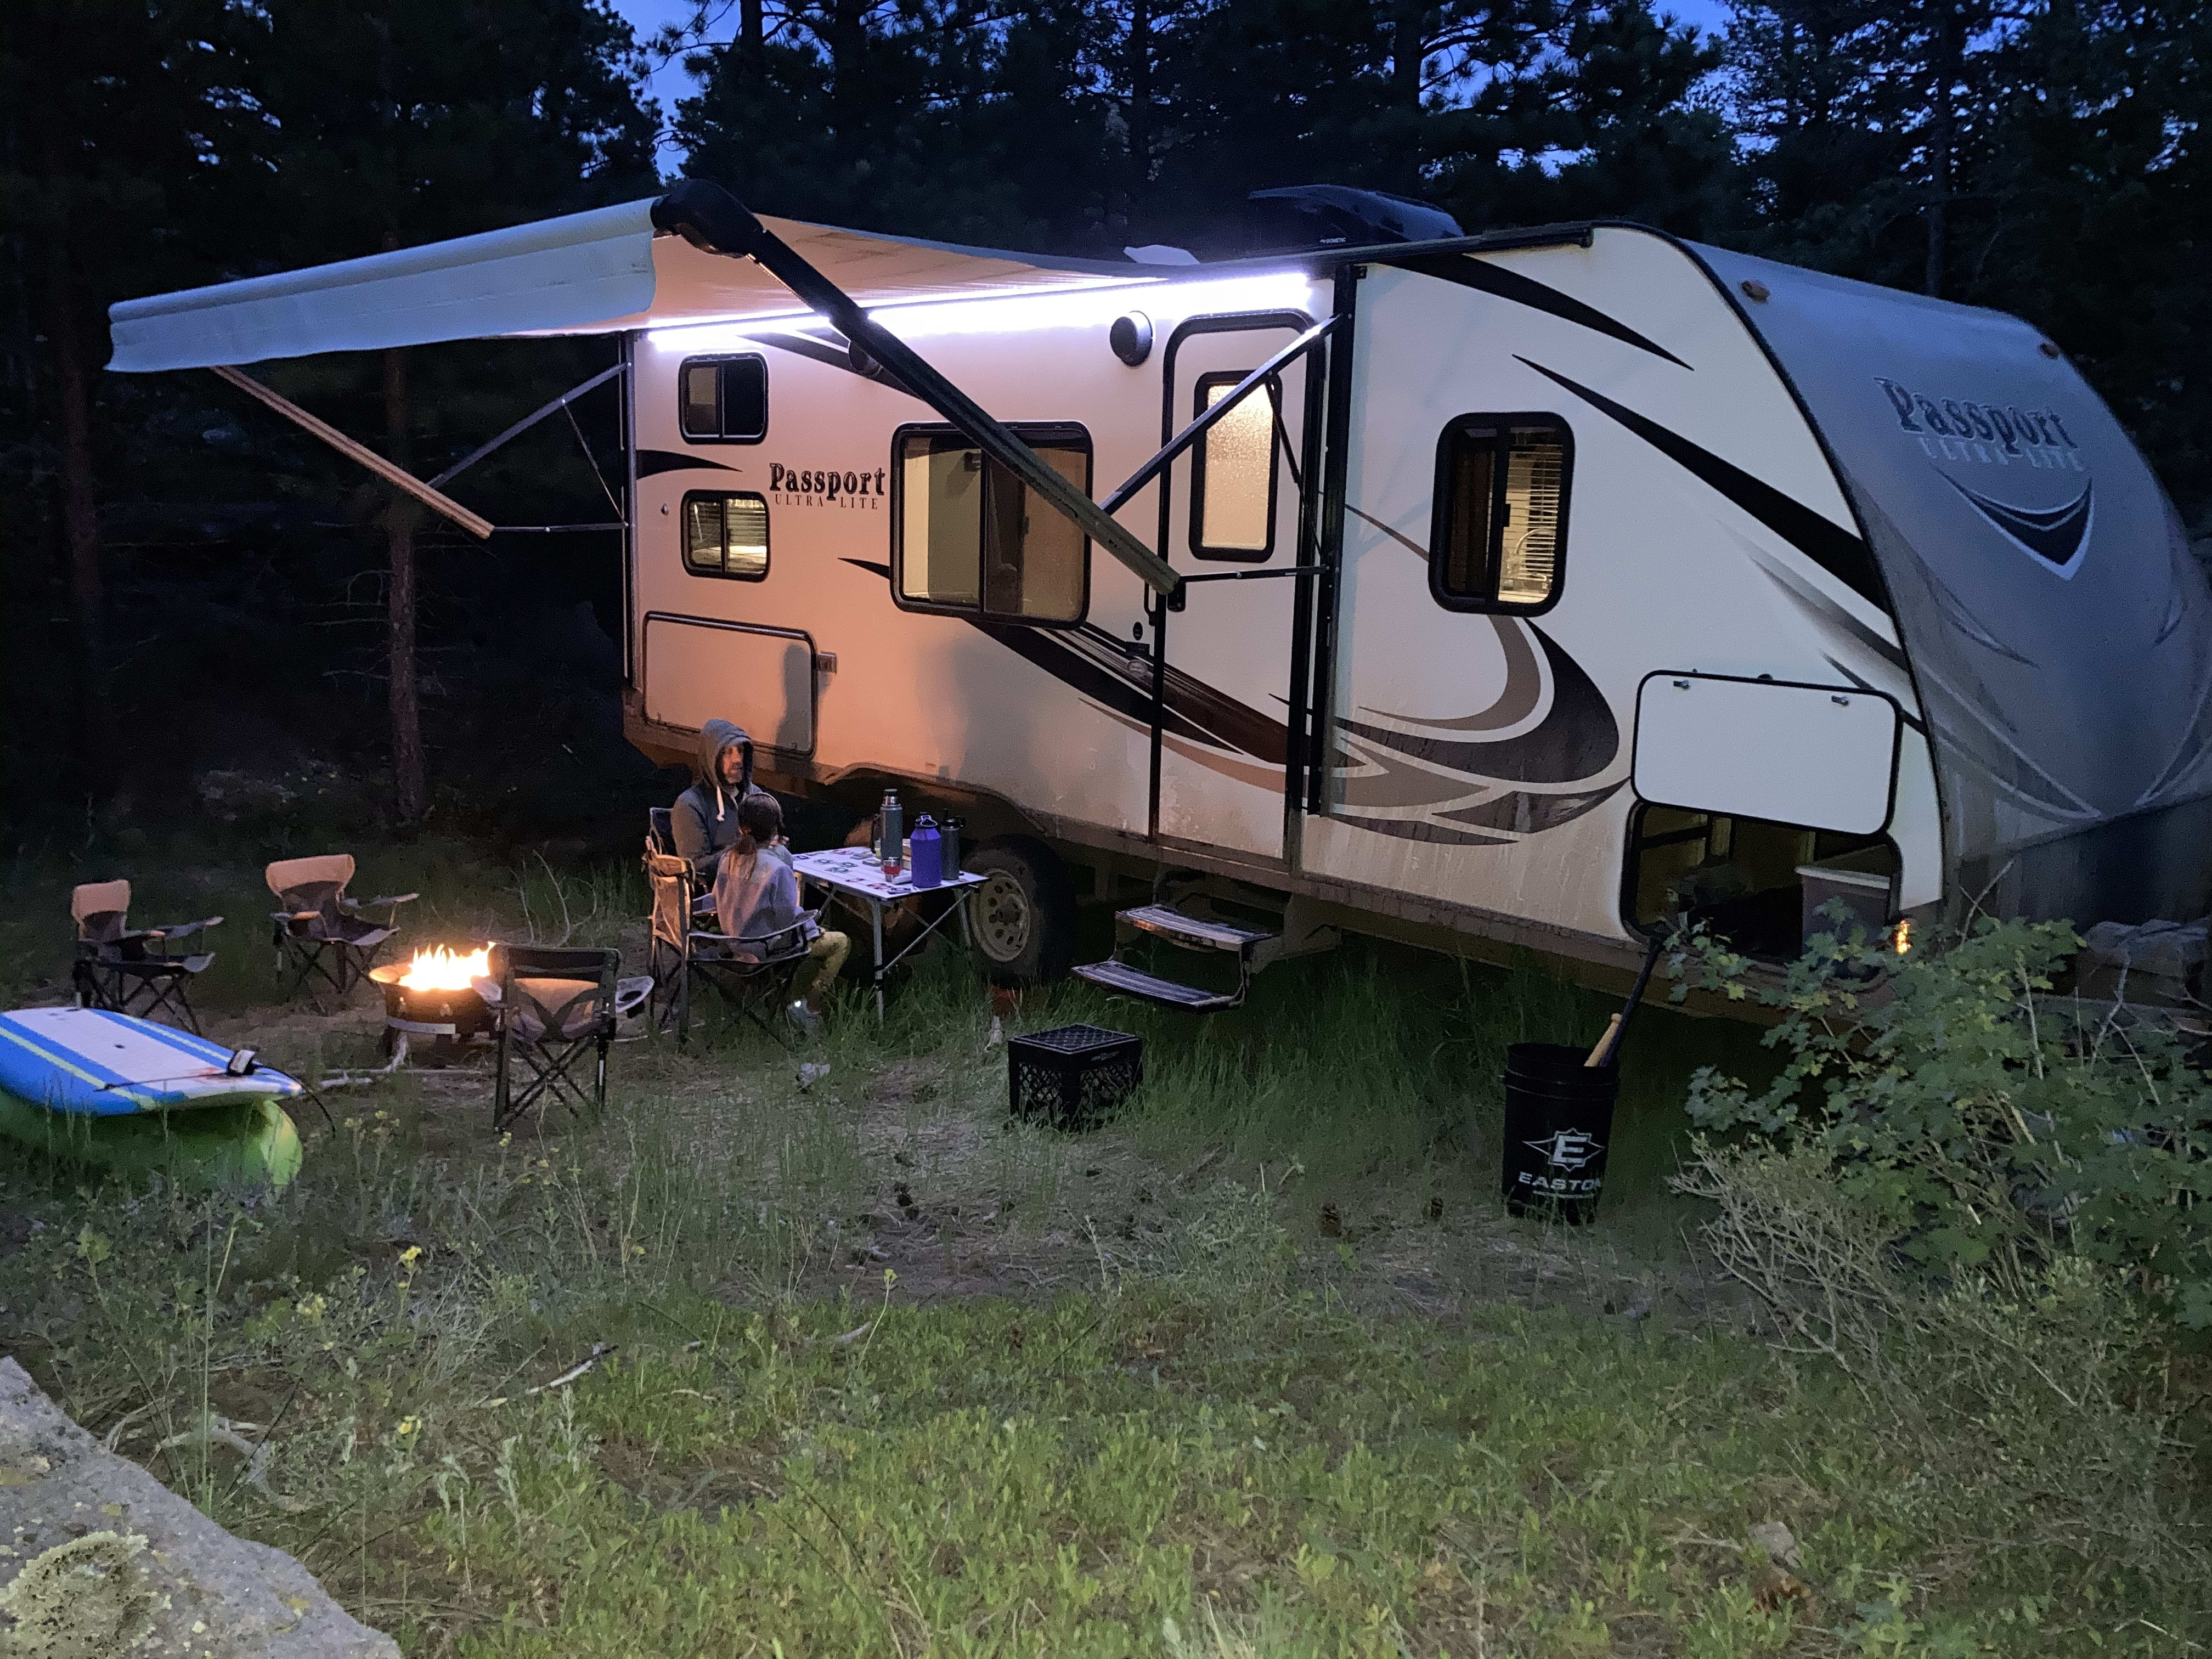 Card games and night life on our latest camping trip to Red Feather Lakes June 2020. Keystone Passport 2017